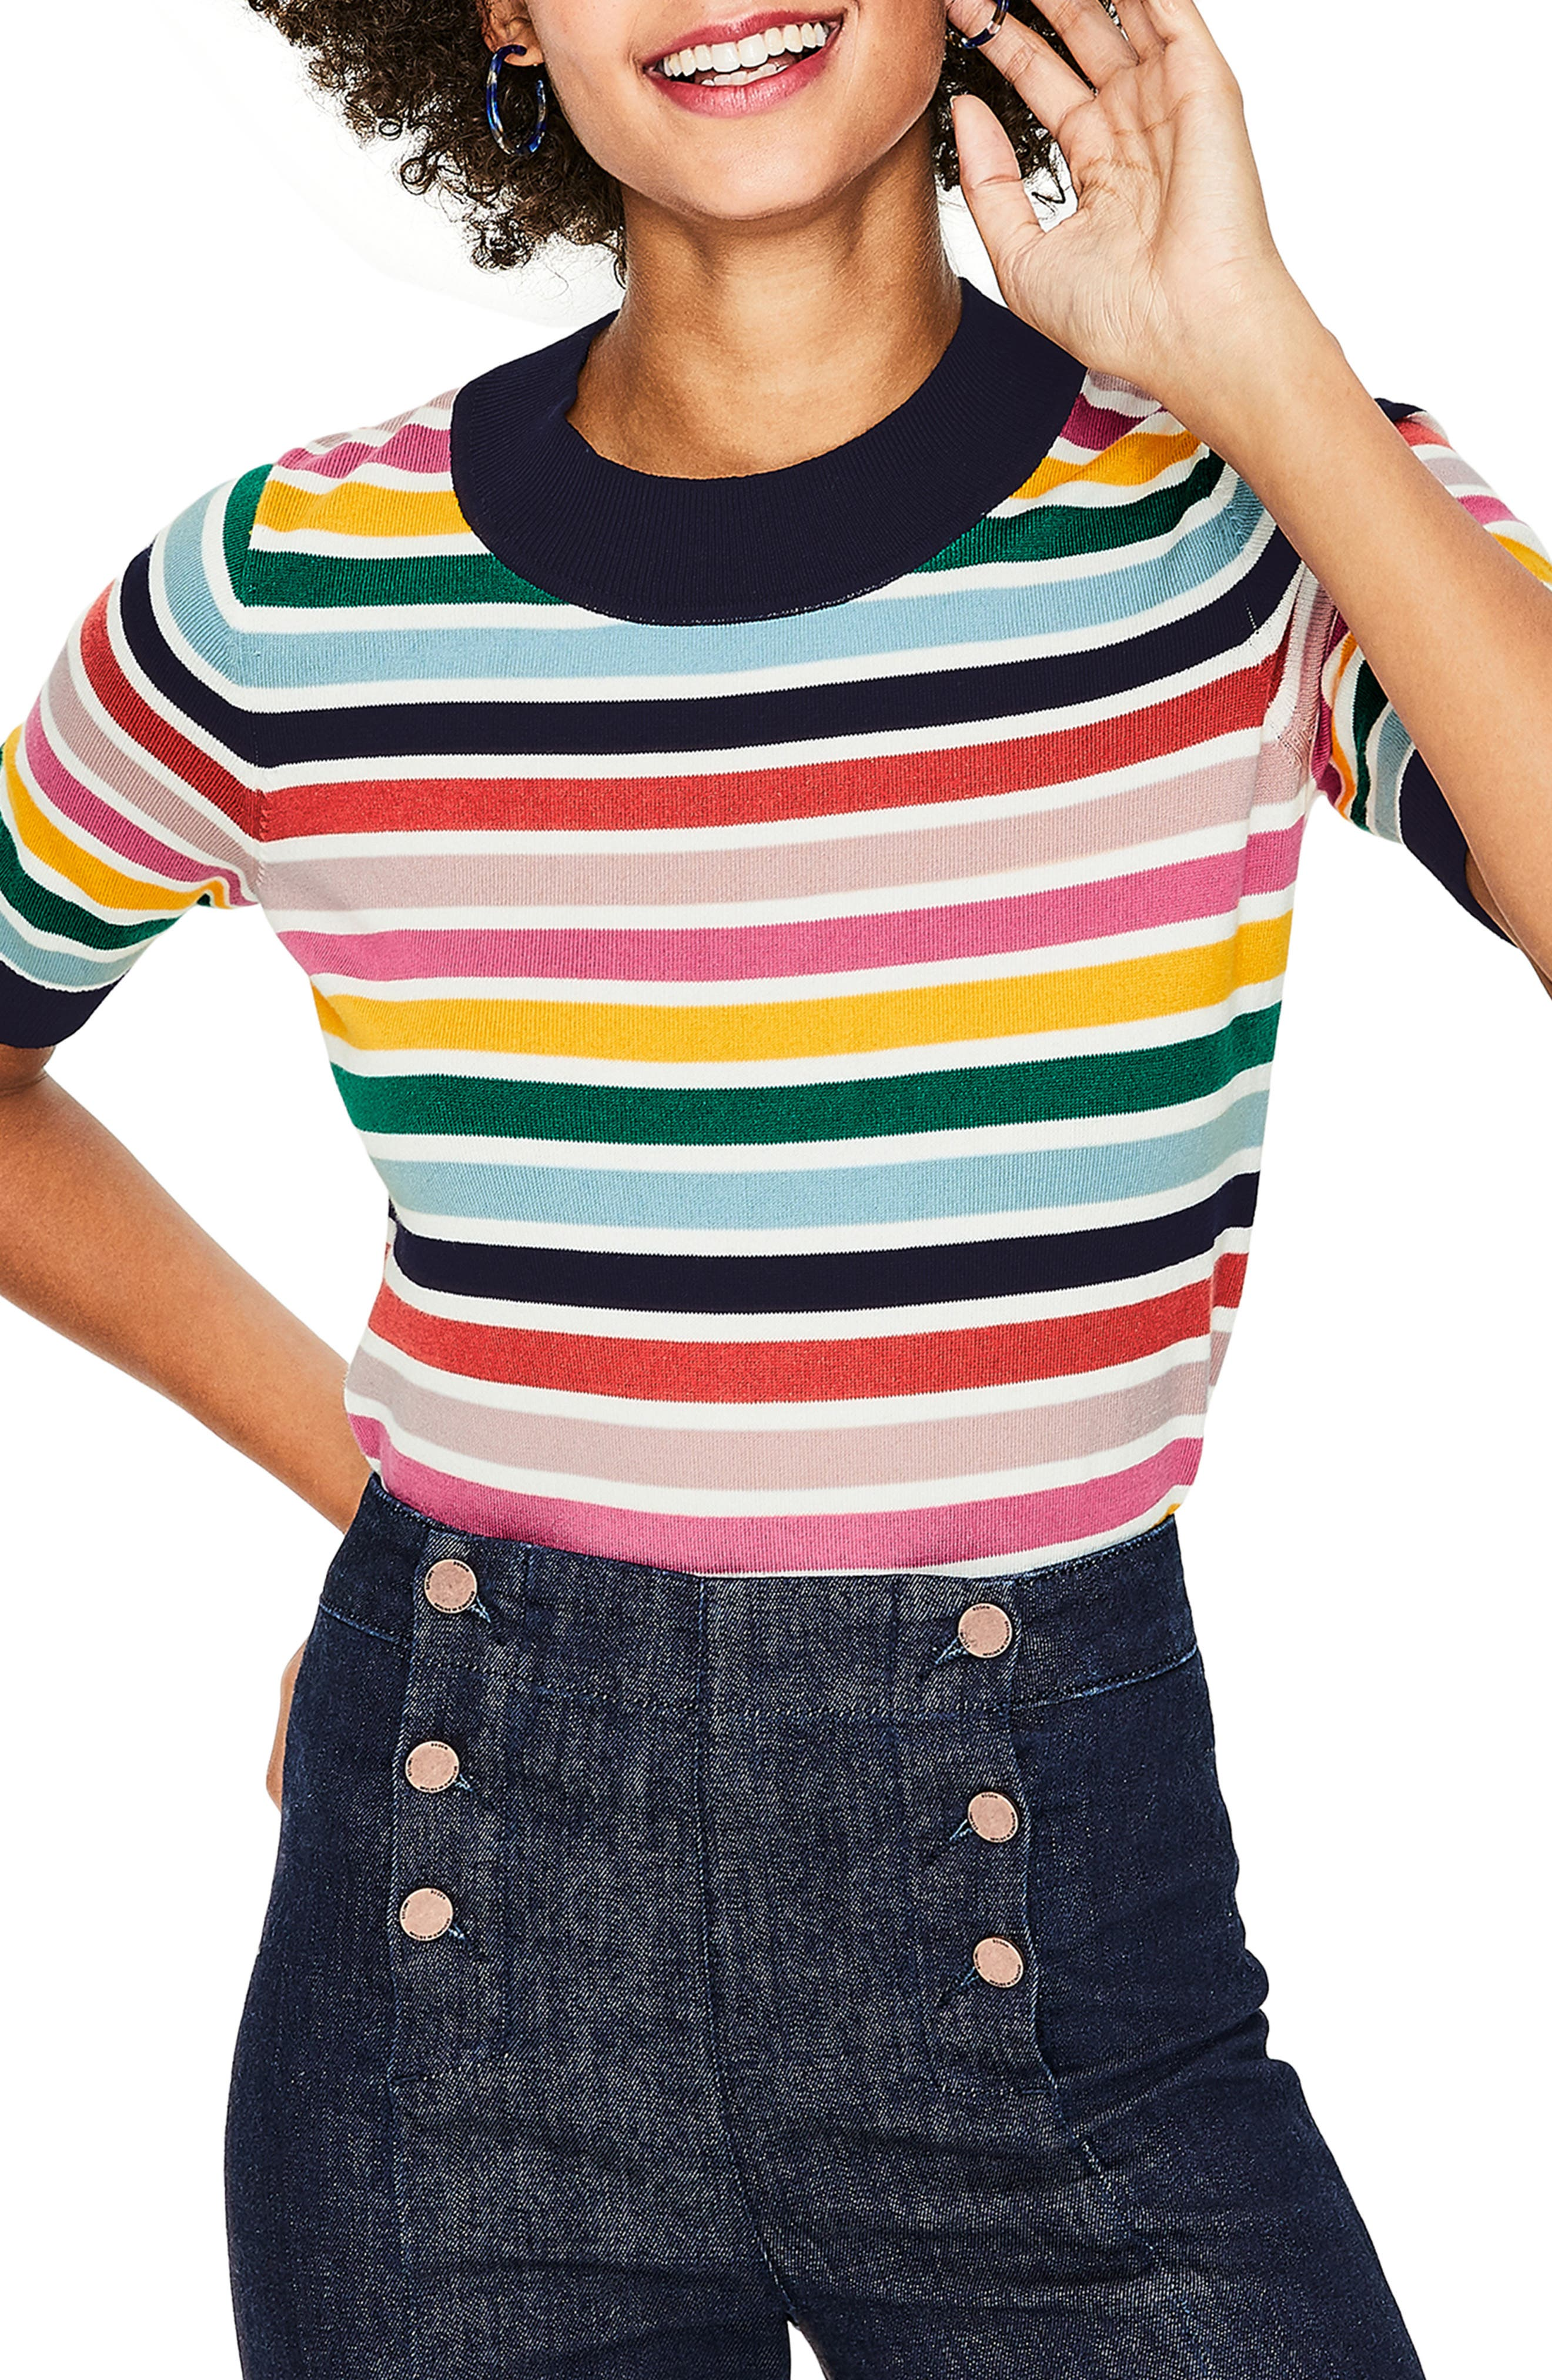 BODEN Multicolor Knit Tee, Main, color, MULTI STRIPE